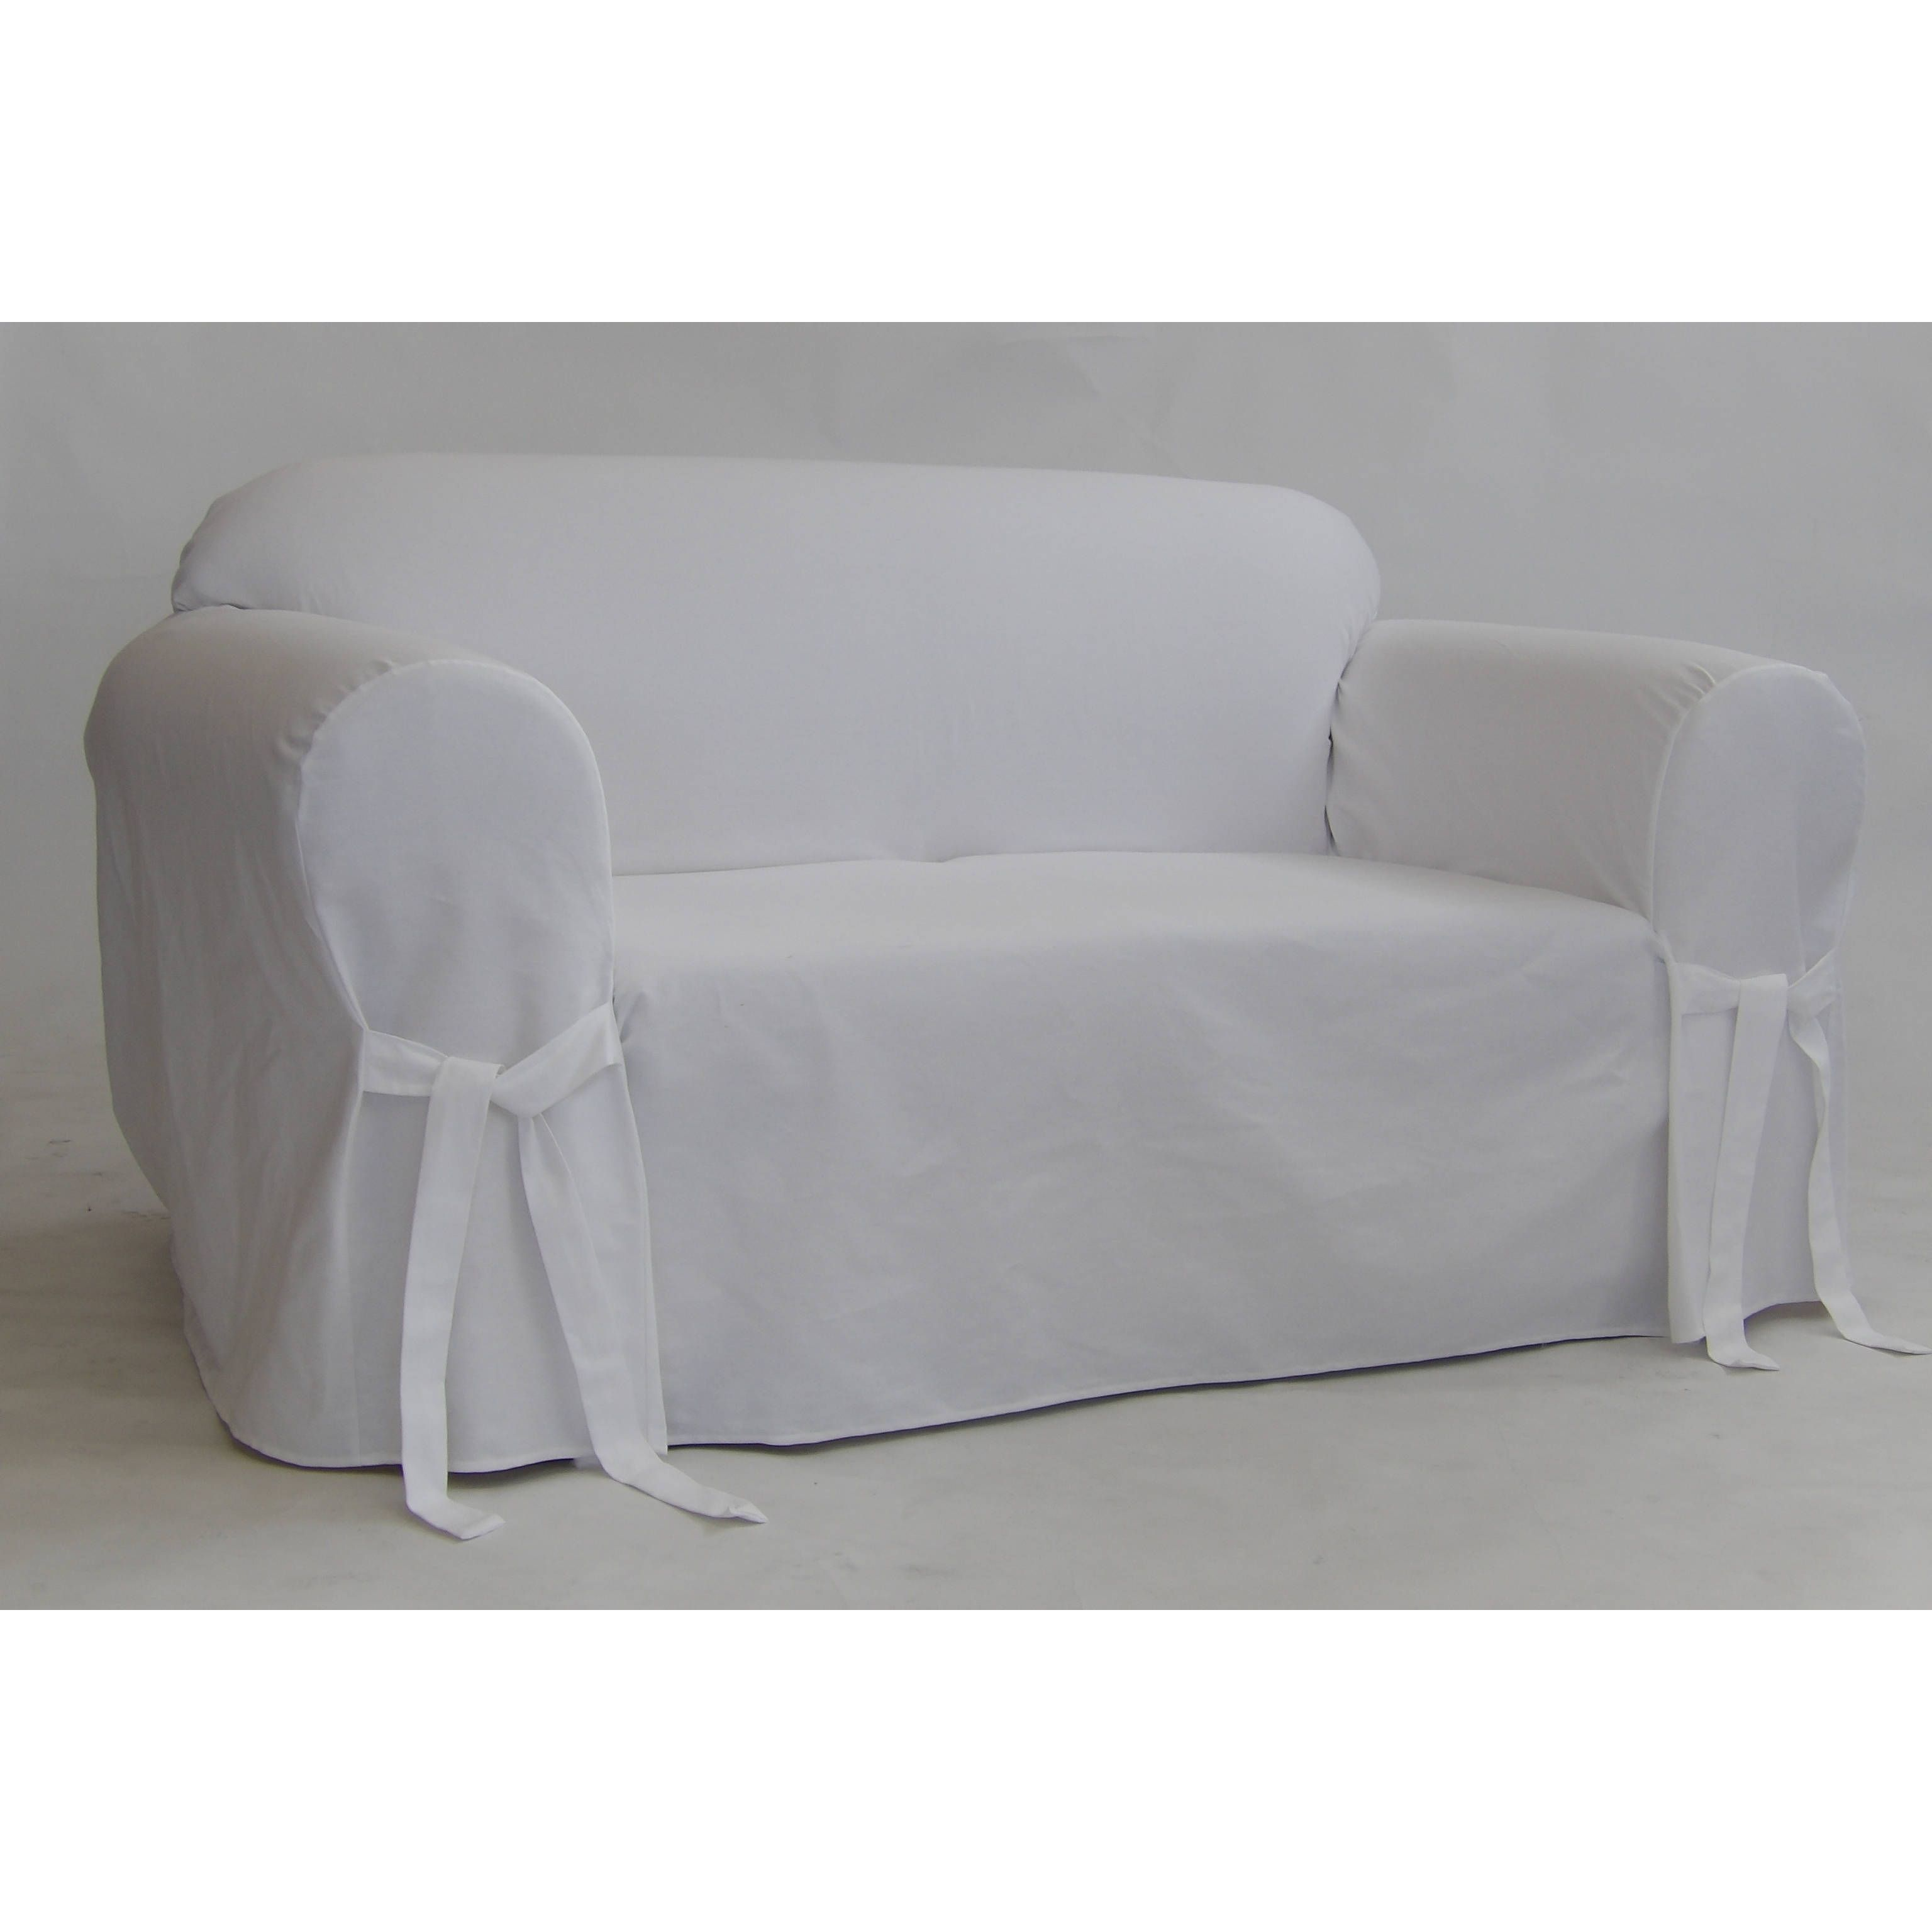 madison wayfair reviews cushion box fit slipcovers stretch furniture slipcover pdx loveseat sure